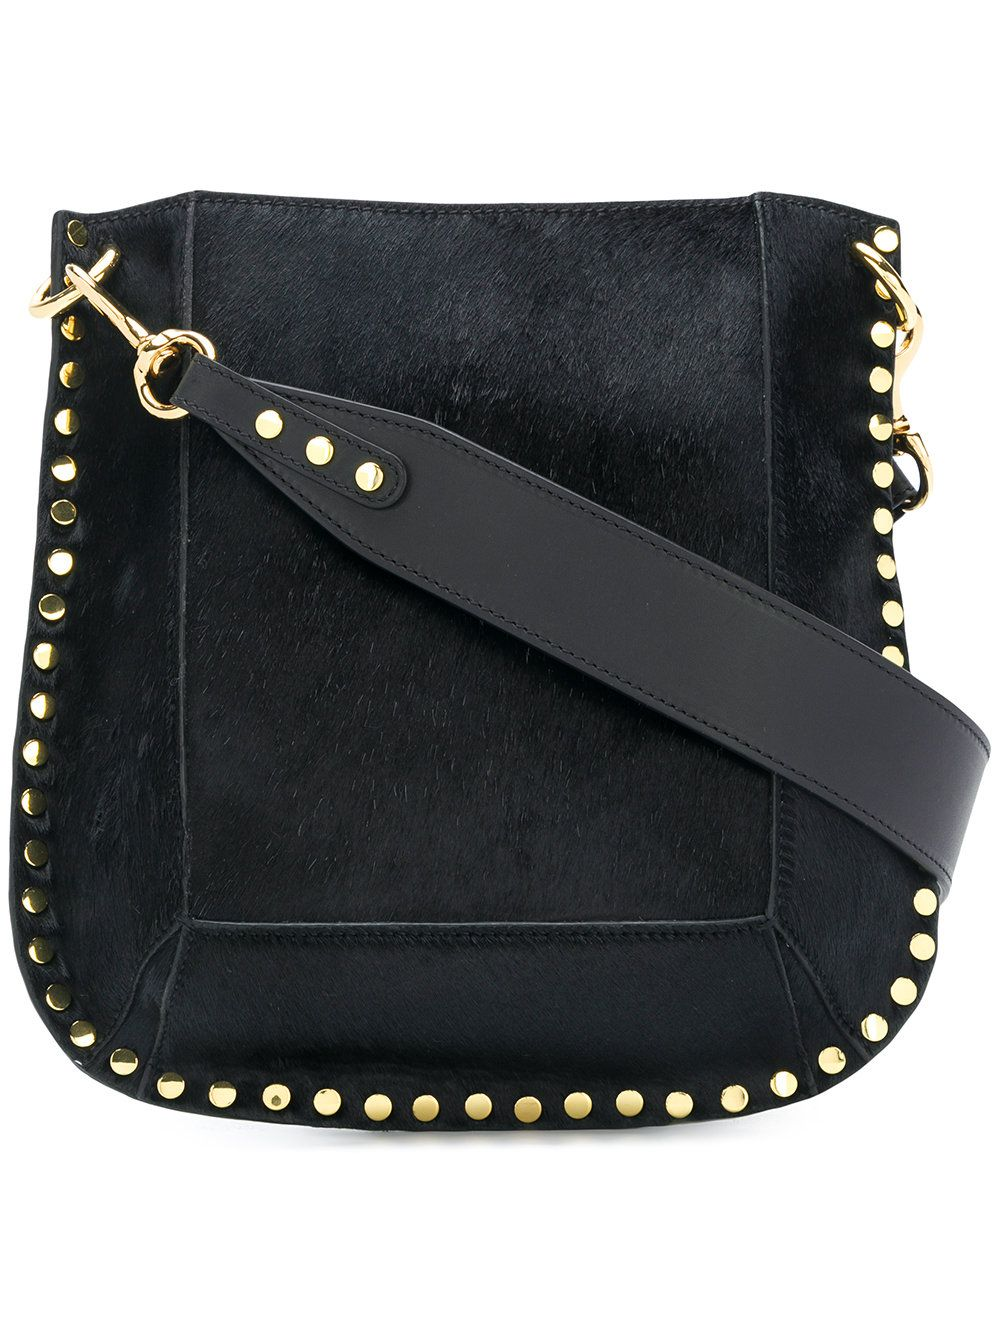 studded crossbody bag - Brown Isabel Marant UQiJaxU